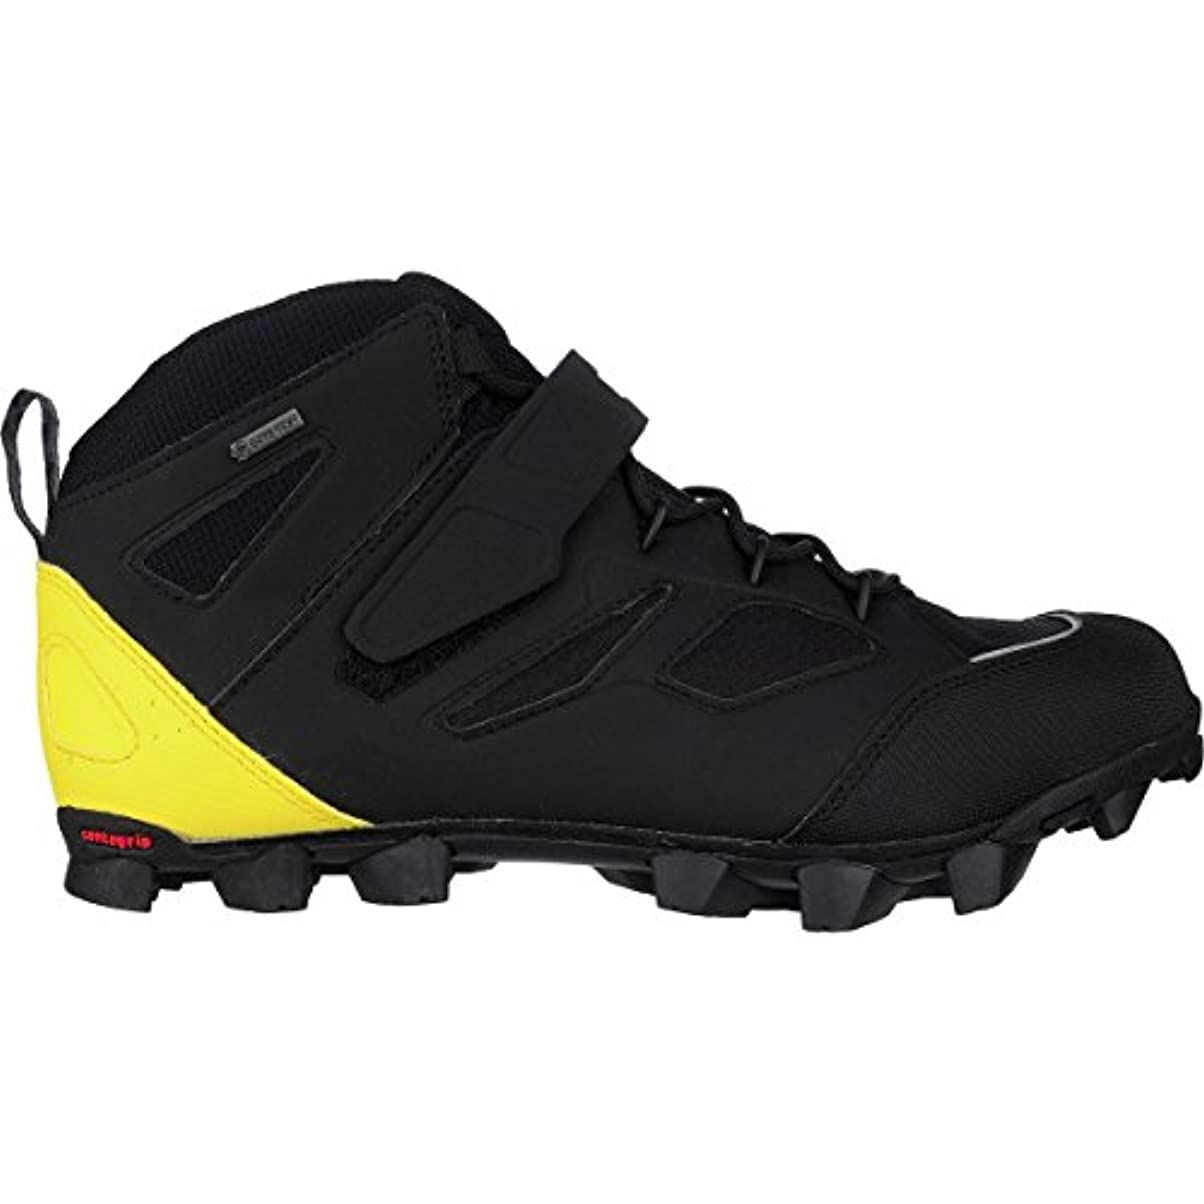 アヒルビット契約Mavic XA Pro h2o GTX Shoe – Men 's Black/Yellow Mavic/ブラック、US 6.0 / UK 5.5